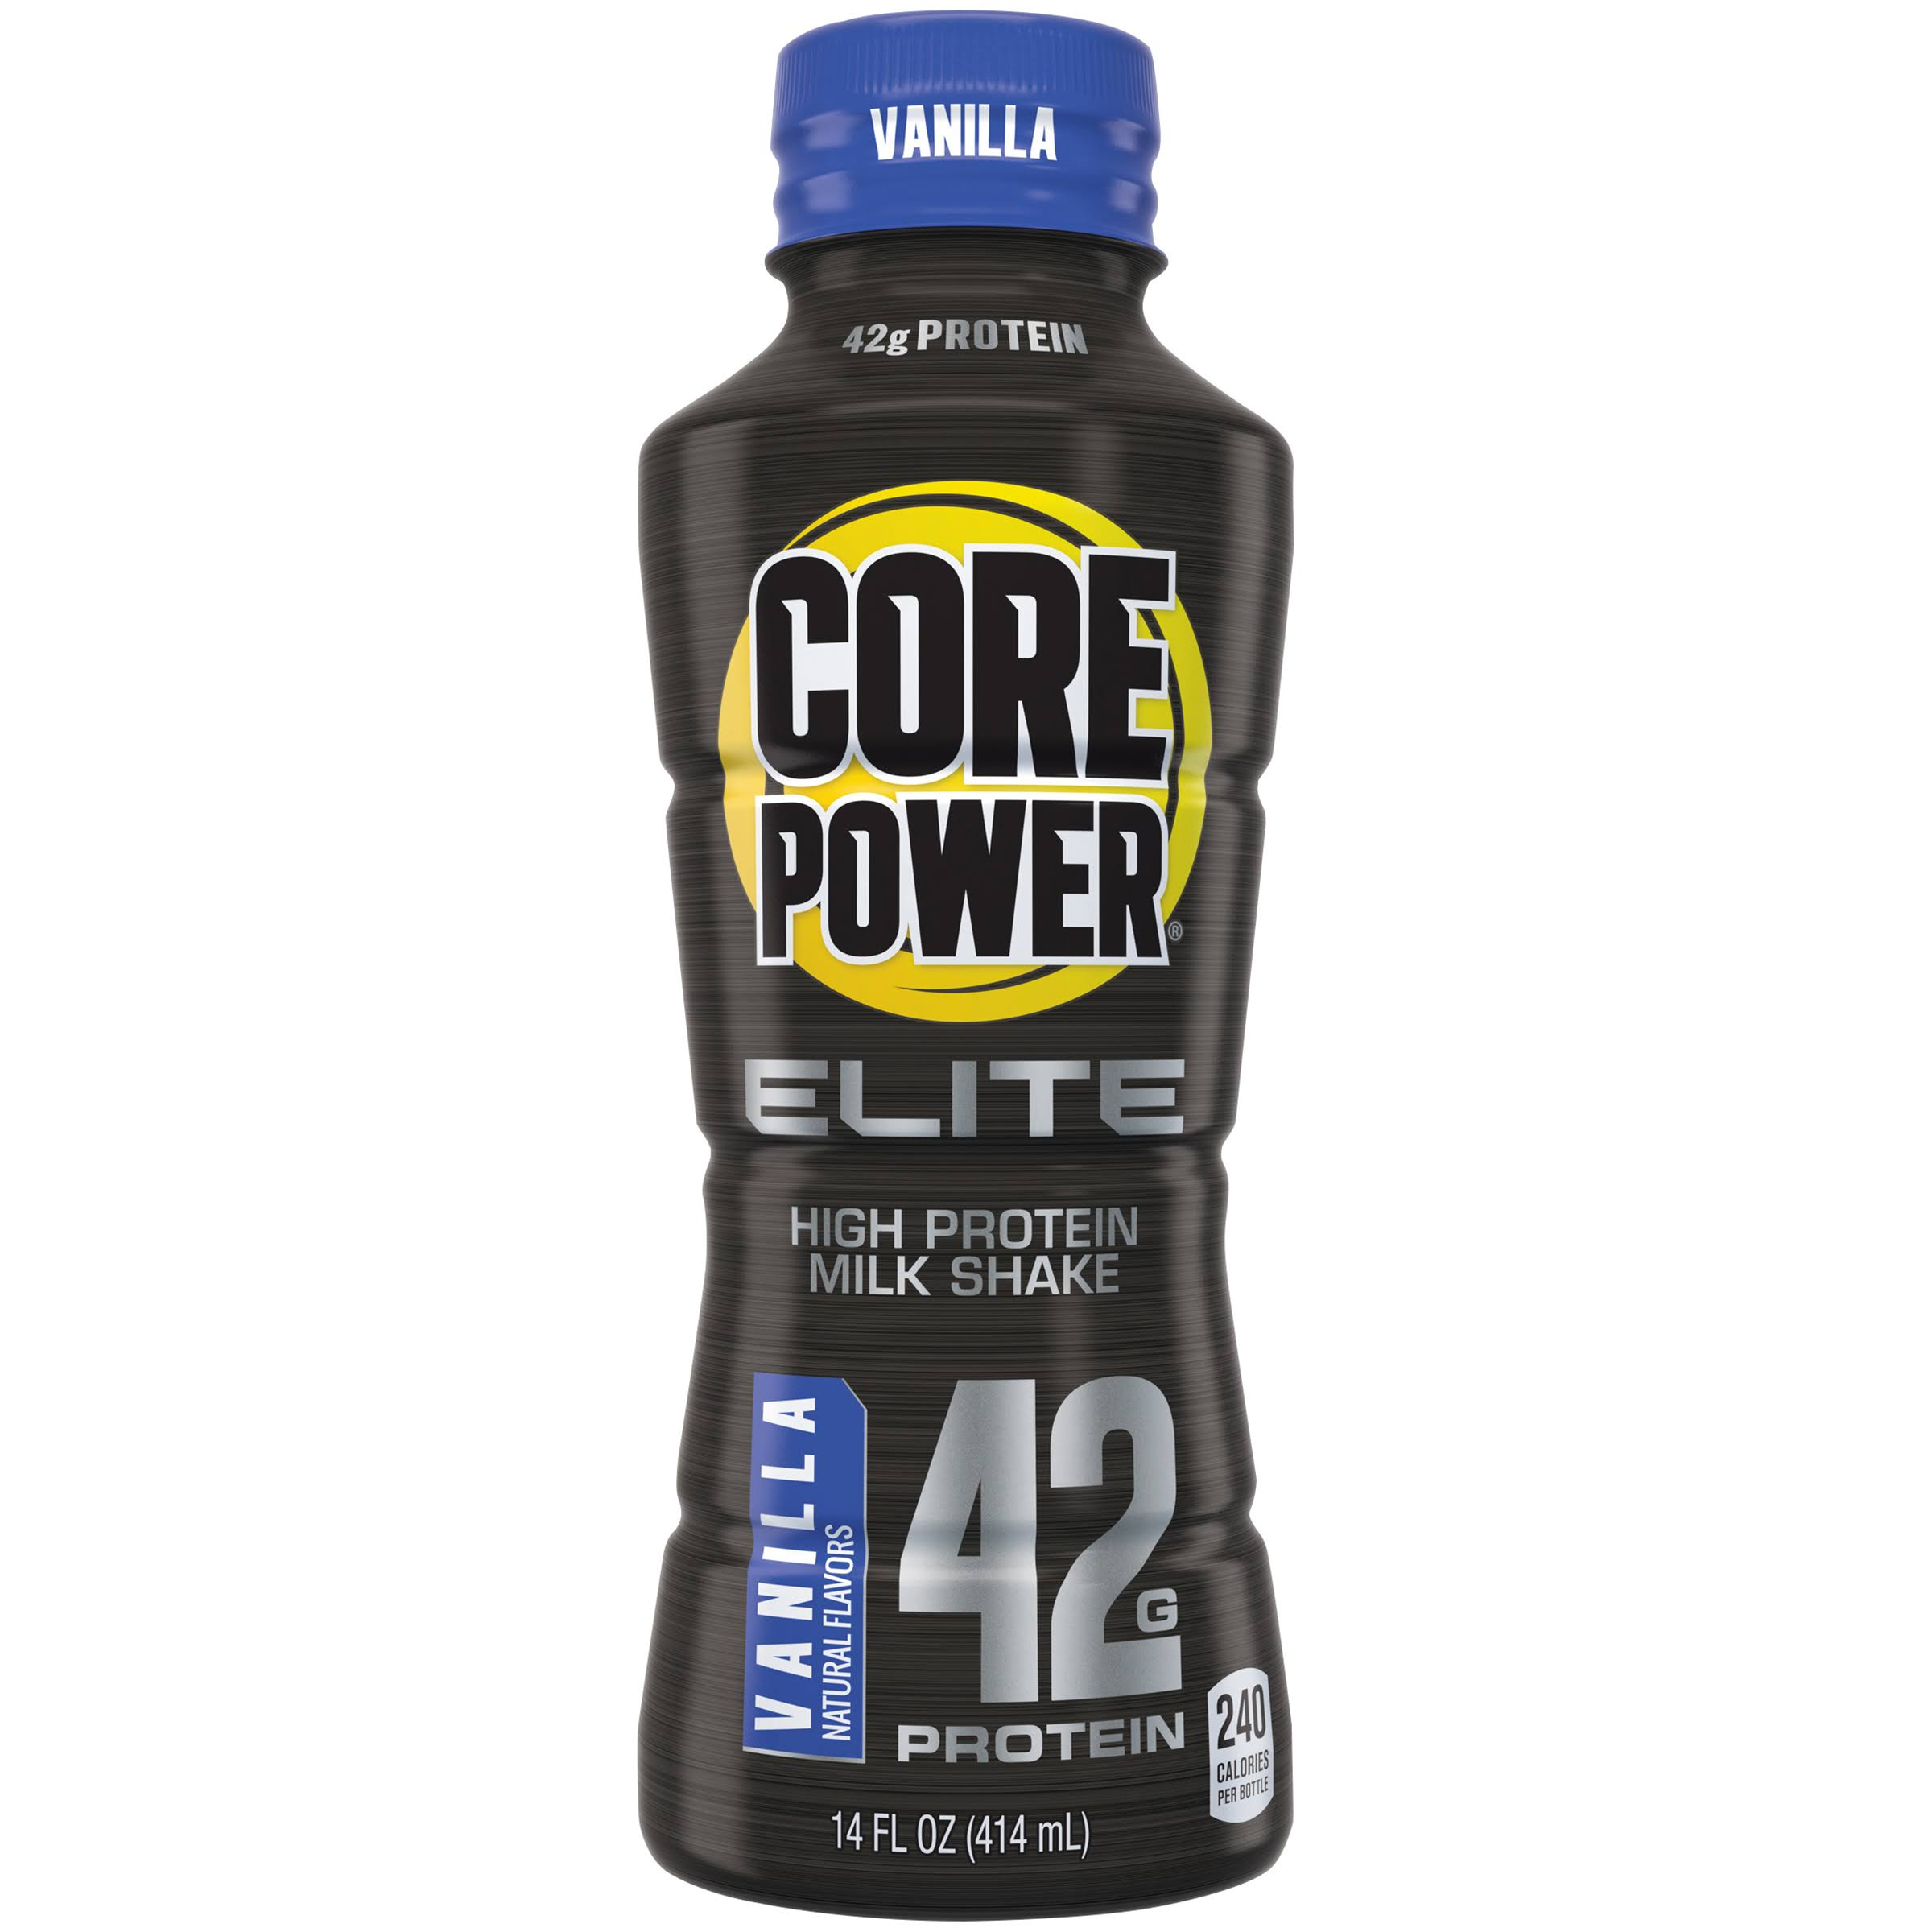 Core Power Elite High Protein Milk Shake - Vanilla, 14 oz